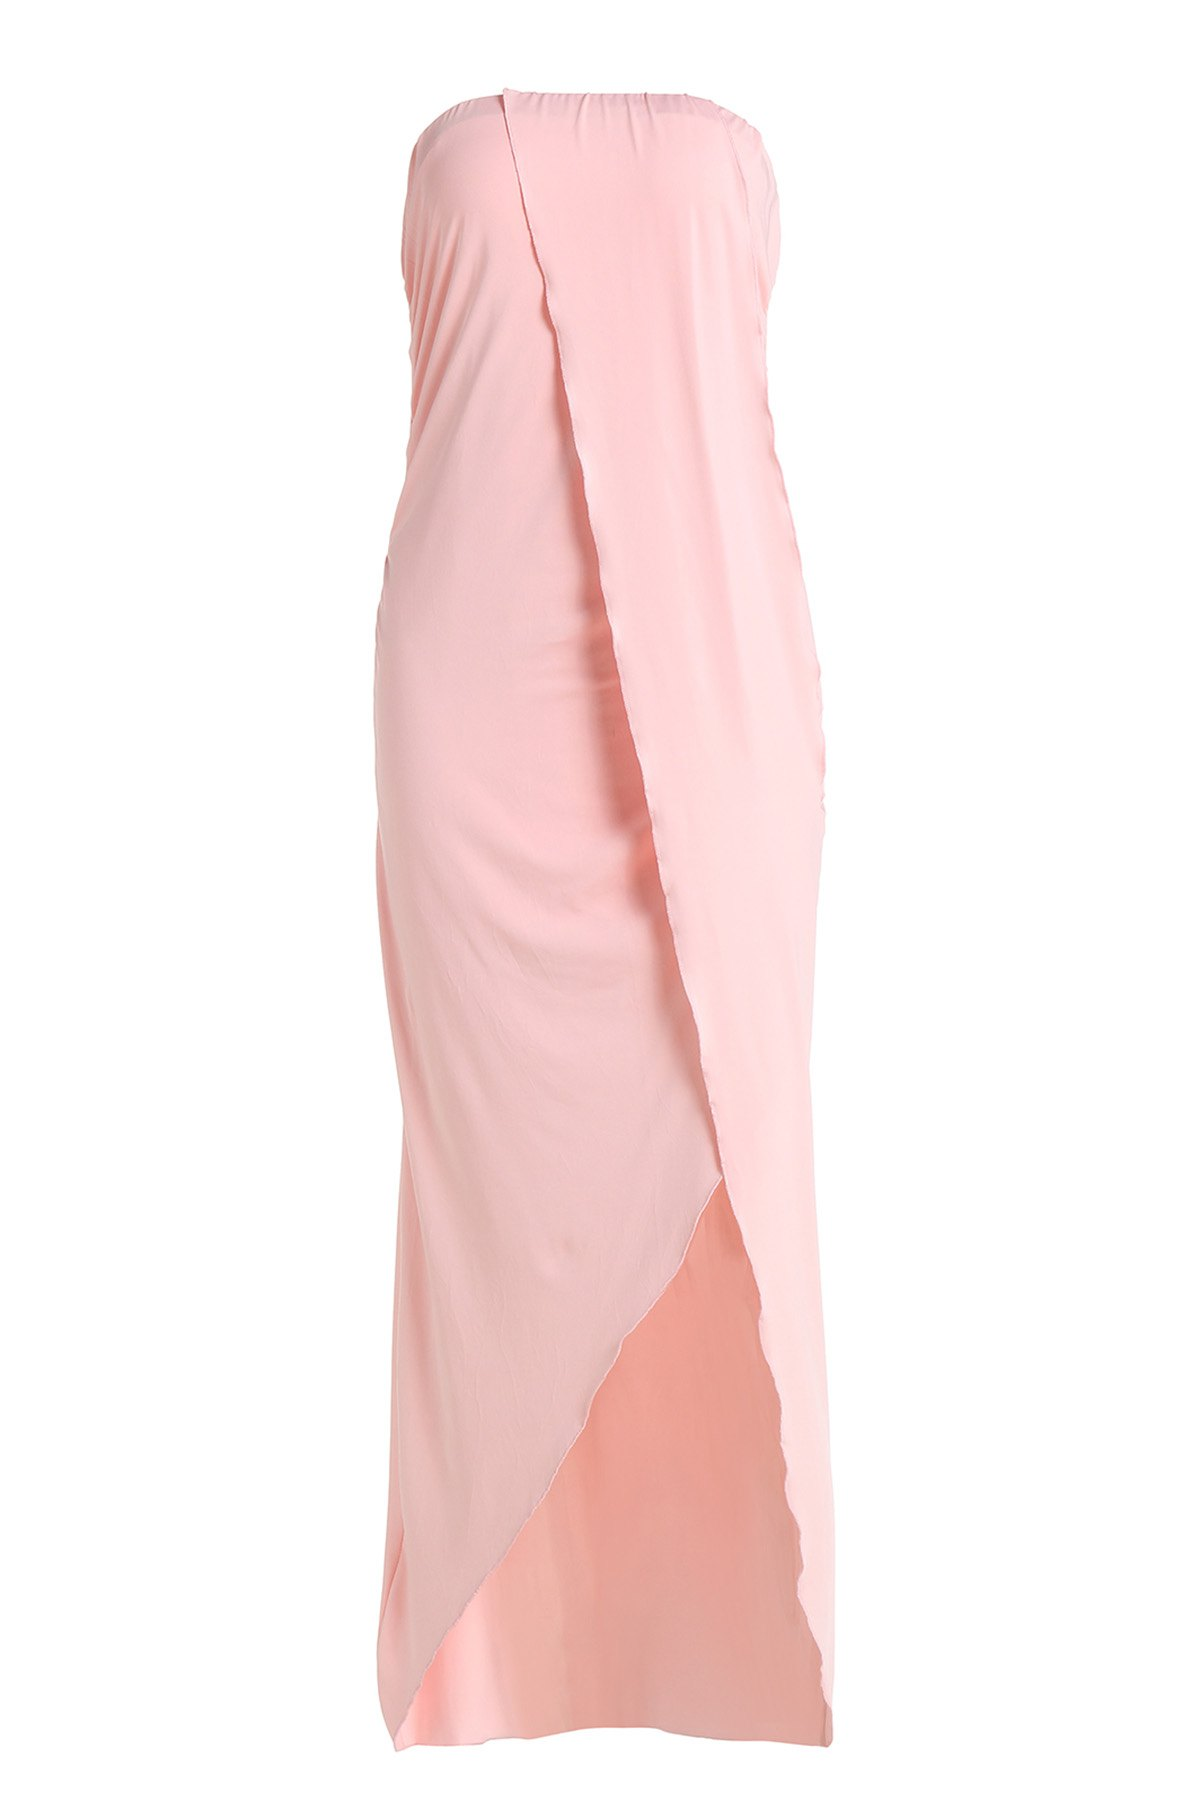 Sexy Strapless Sleeveless Solid Color Asymmetrical Women's Dress - S PINK